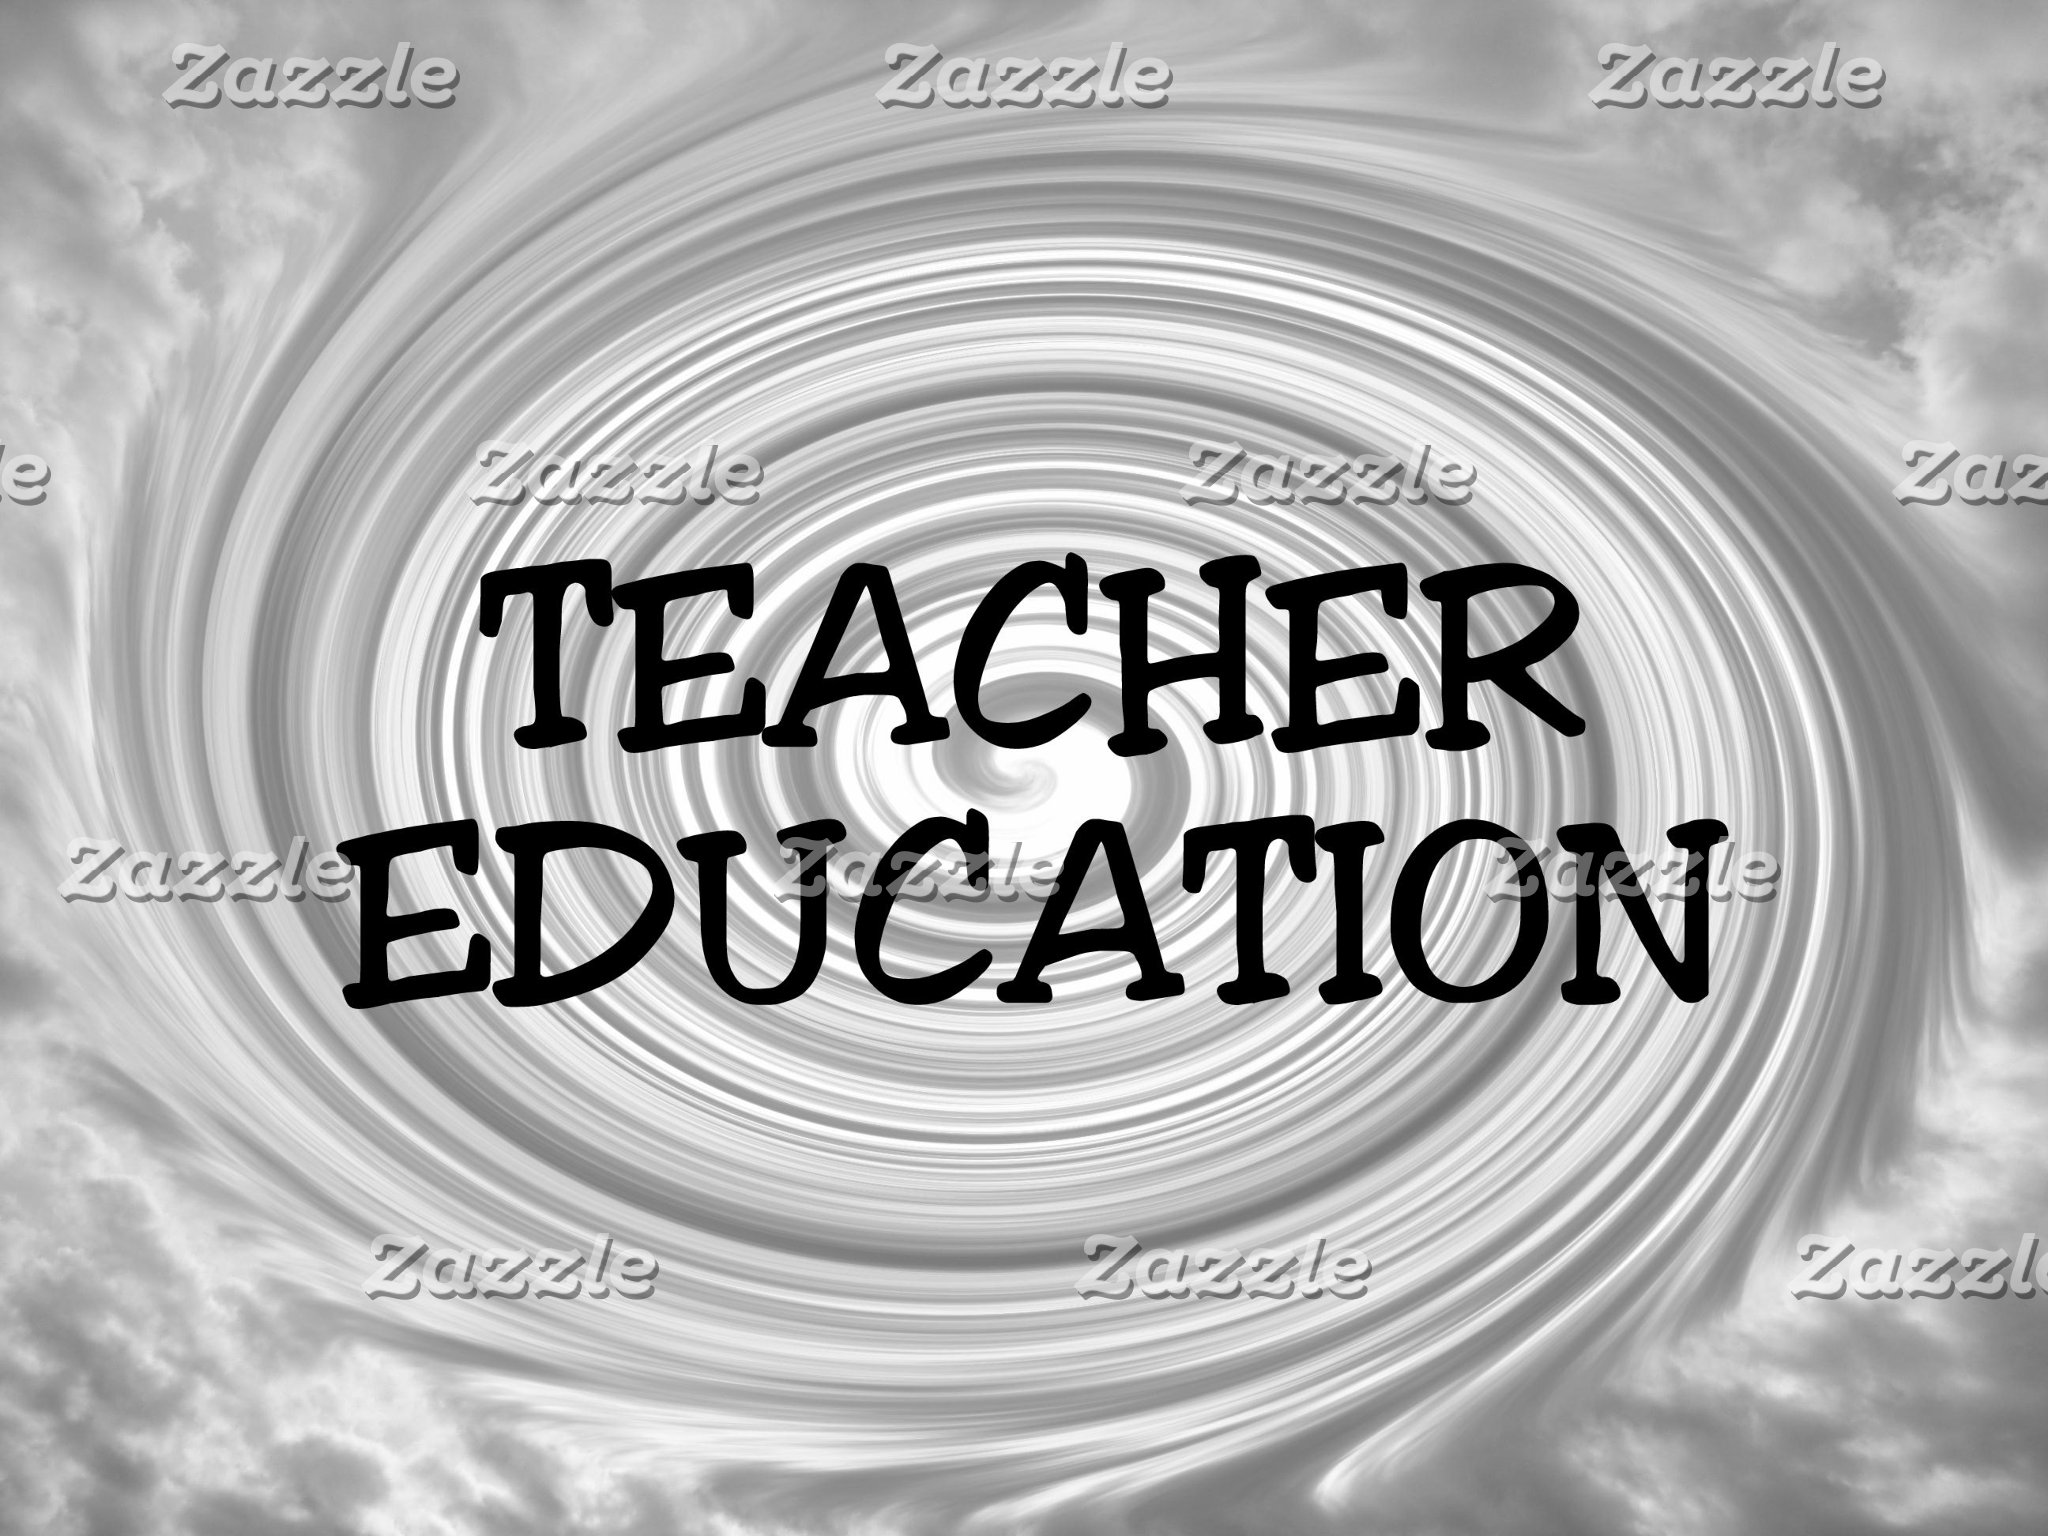 Teaching/Education